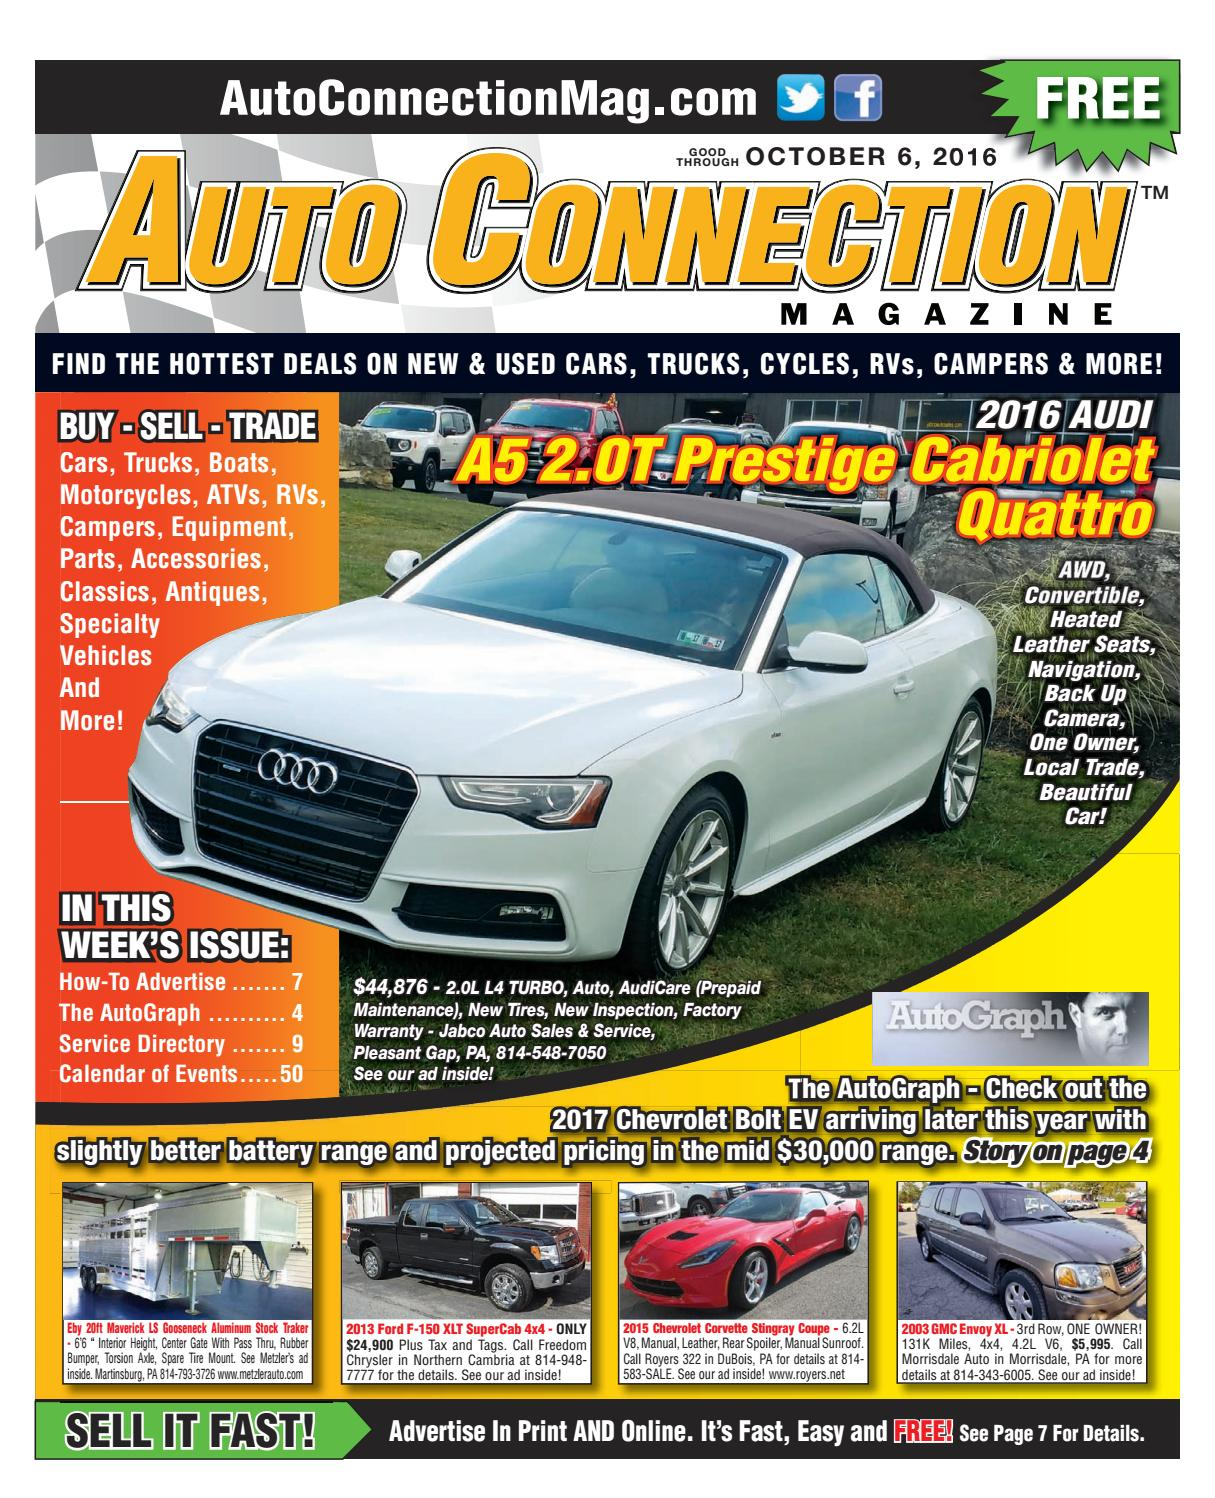 10-06-16 Auto Connection Magazine by Auto Connection Magazine - issuu